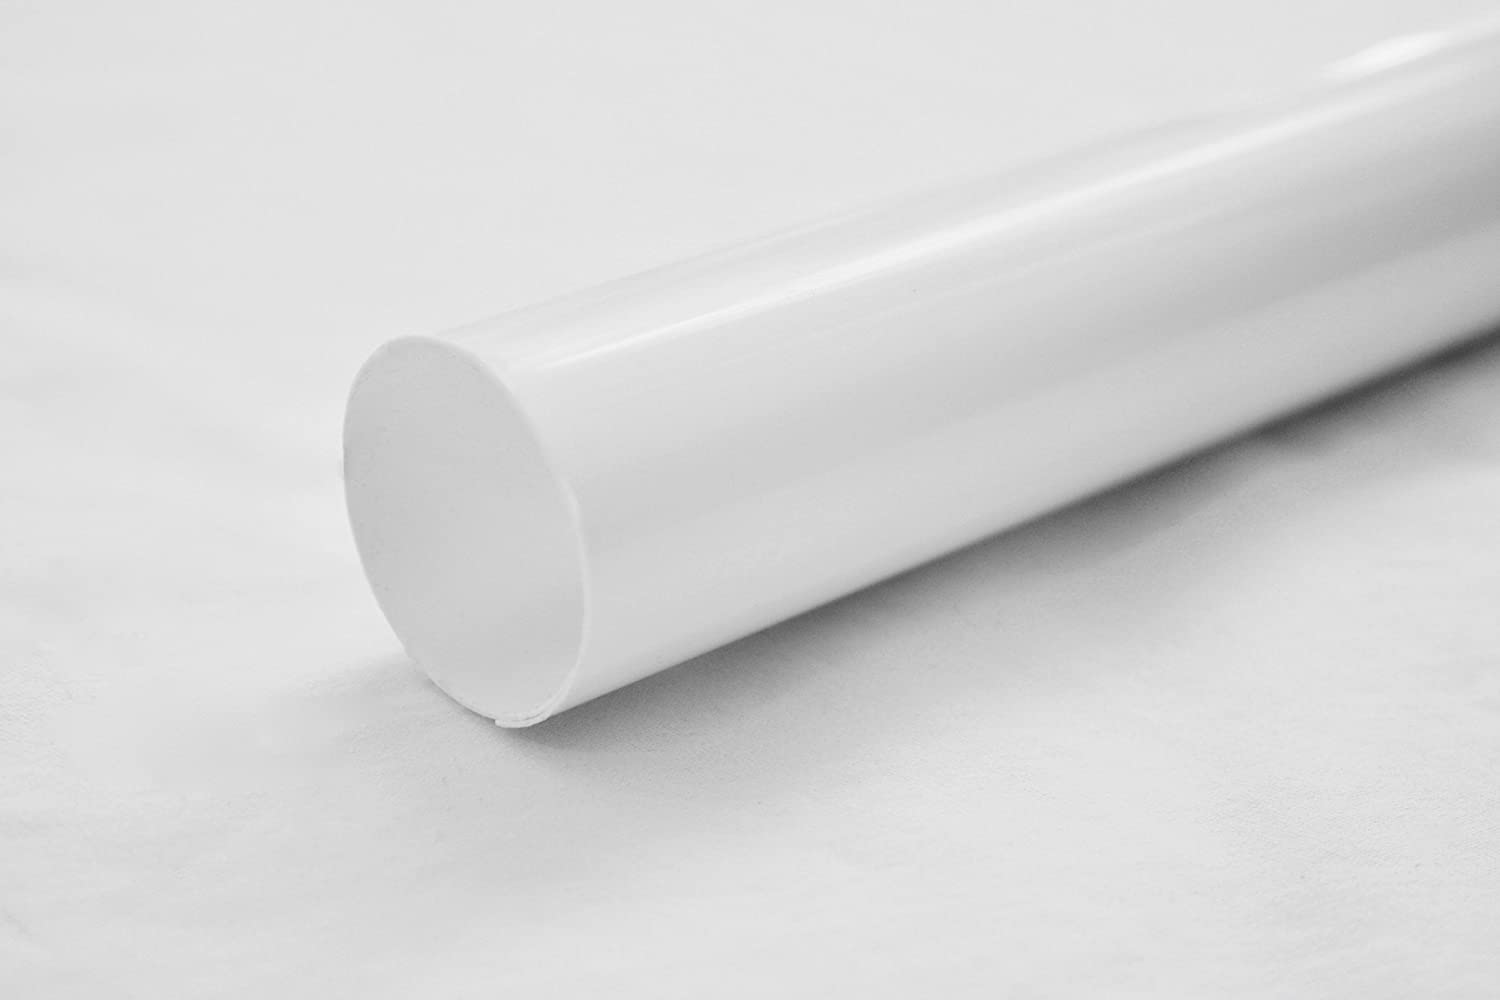 Superior Amazon.com: Closet Rod Cover By Jenacor | Rod Cover Rod Covers Plastic  Tubing Rod Protective Cover Rod Cover Sleeve | White Plastic Closet Rod  Cover 1 1/4 ...